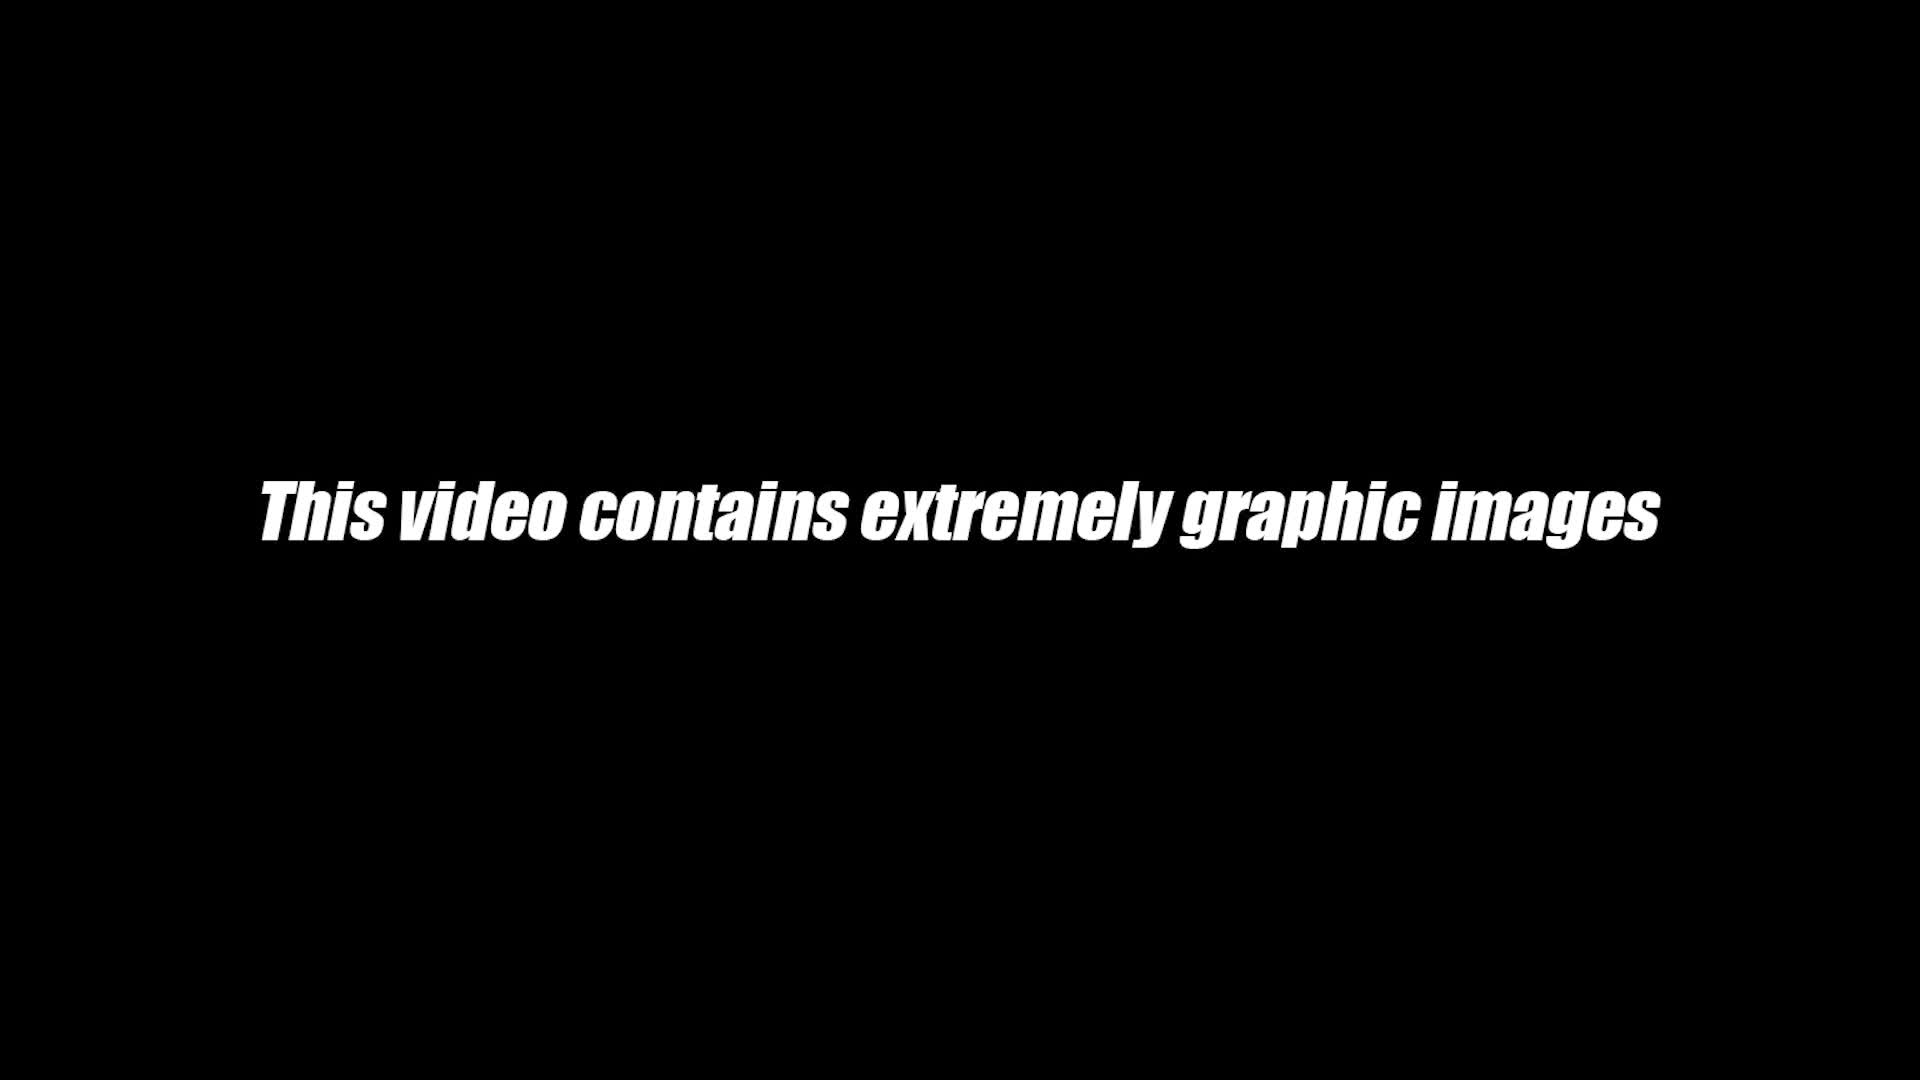 OJ Simpson Murder Photos - Nicole Simpson and Ron Goldman (Extremely Graphic)